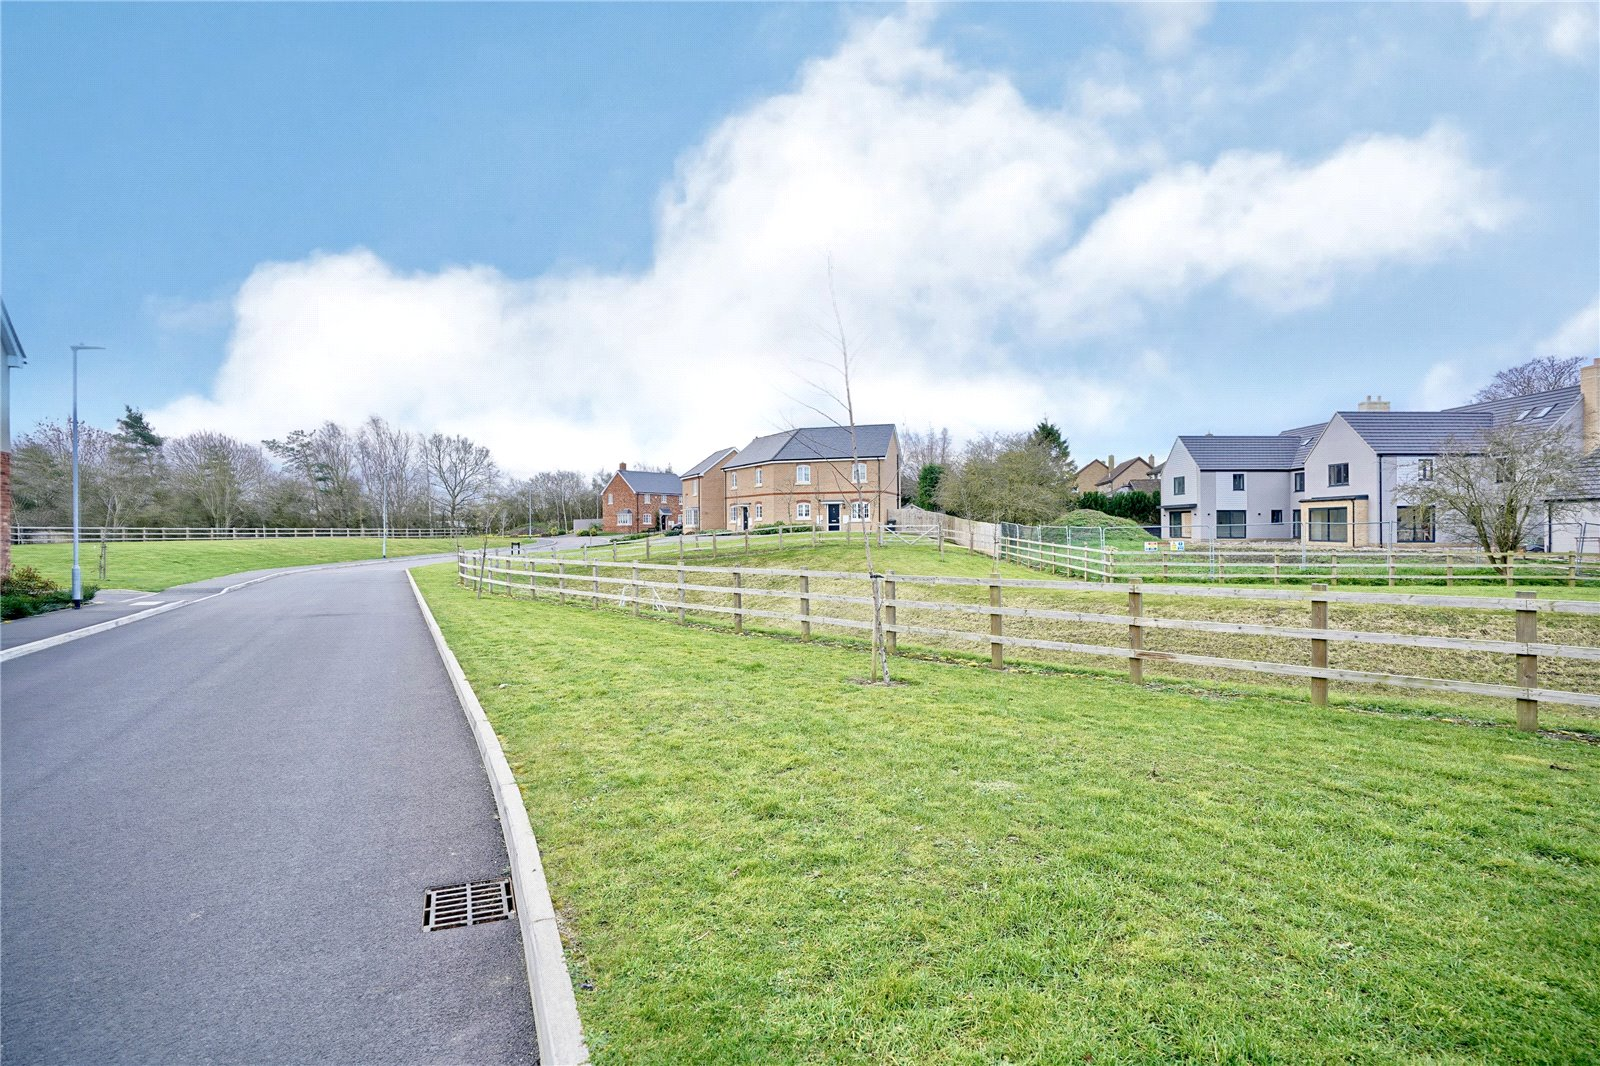 3 bed house for sale in Sawtry, PE28 5ZJ  - Property Image 12